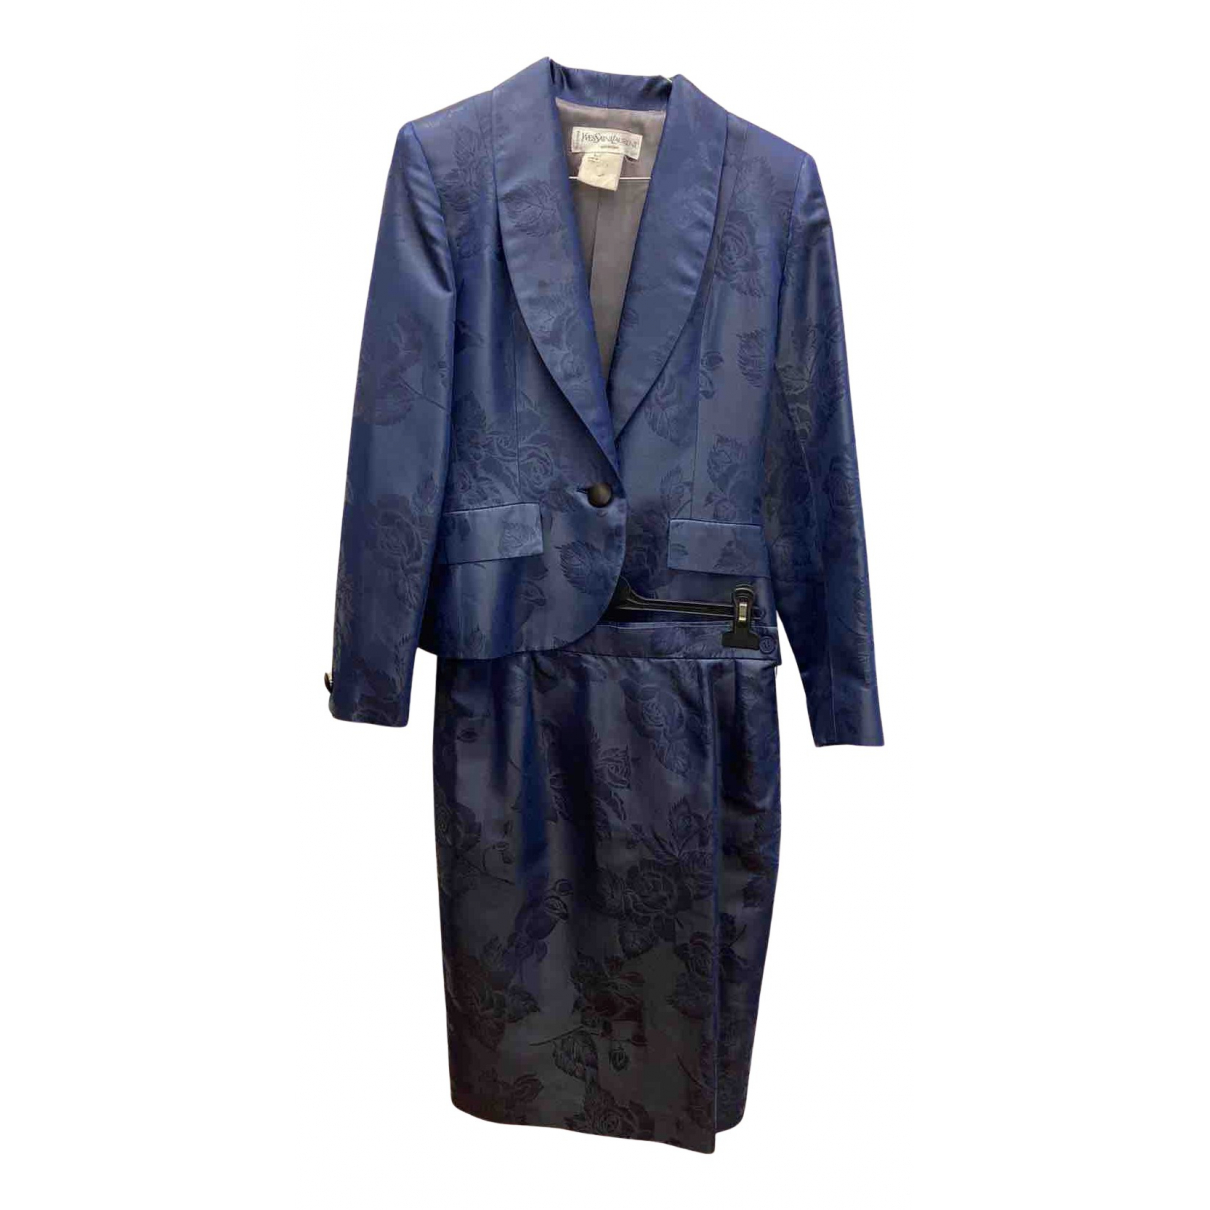 Yves Saint Laurent N Blue jacket for Women 38 FR